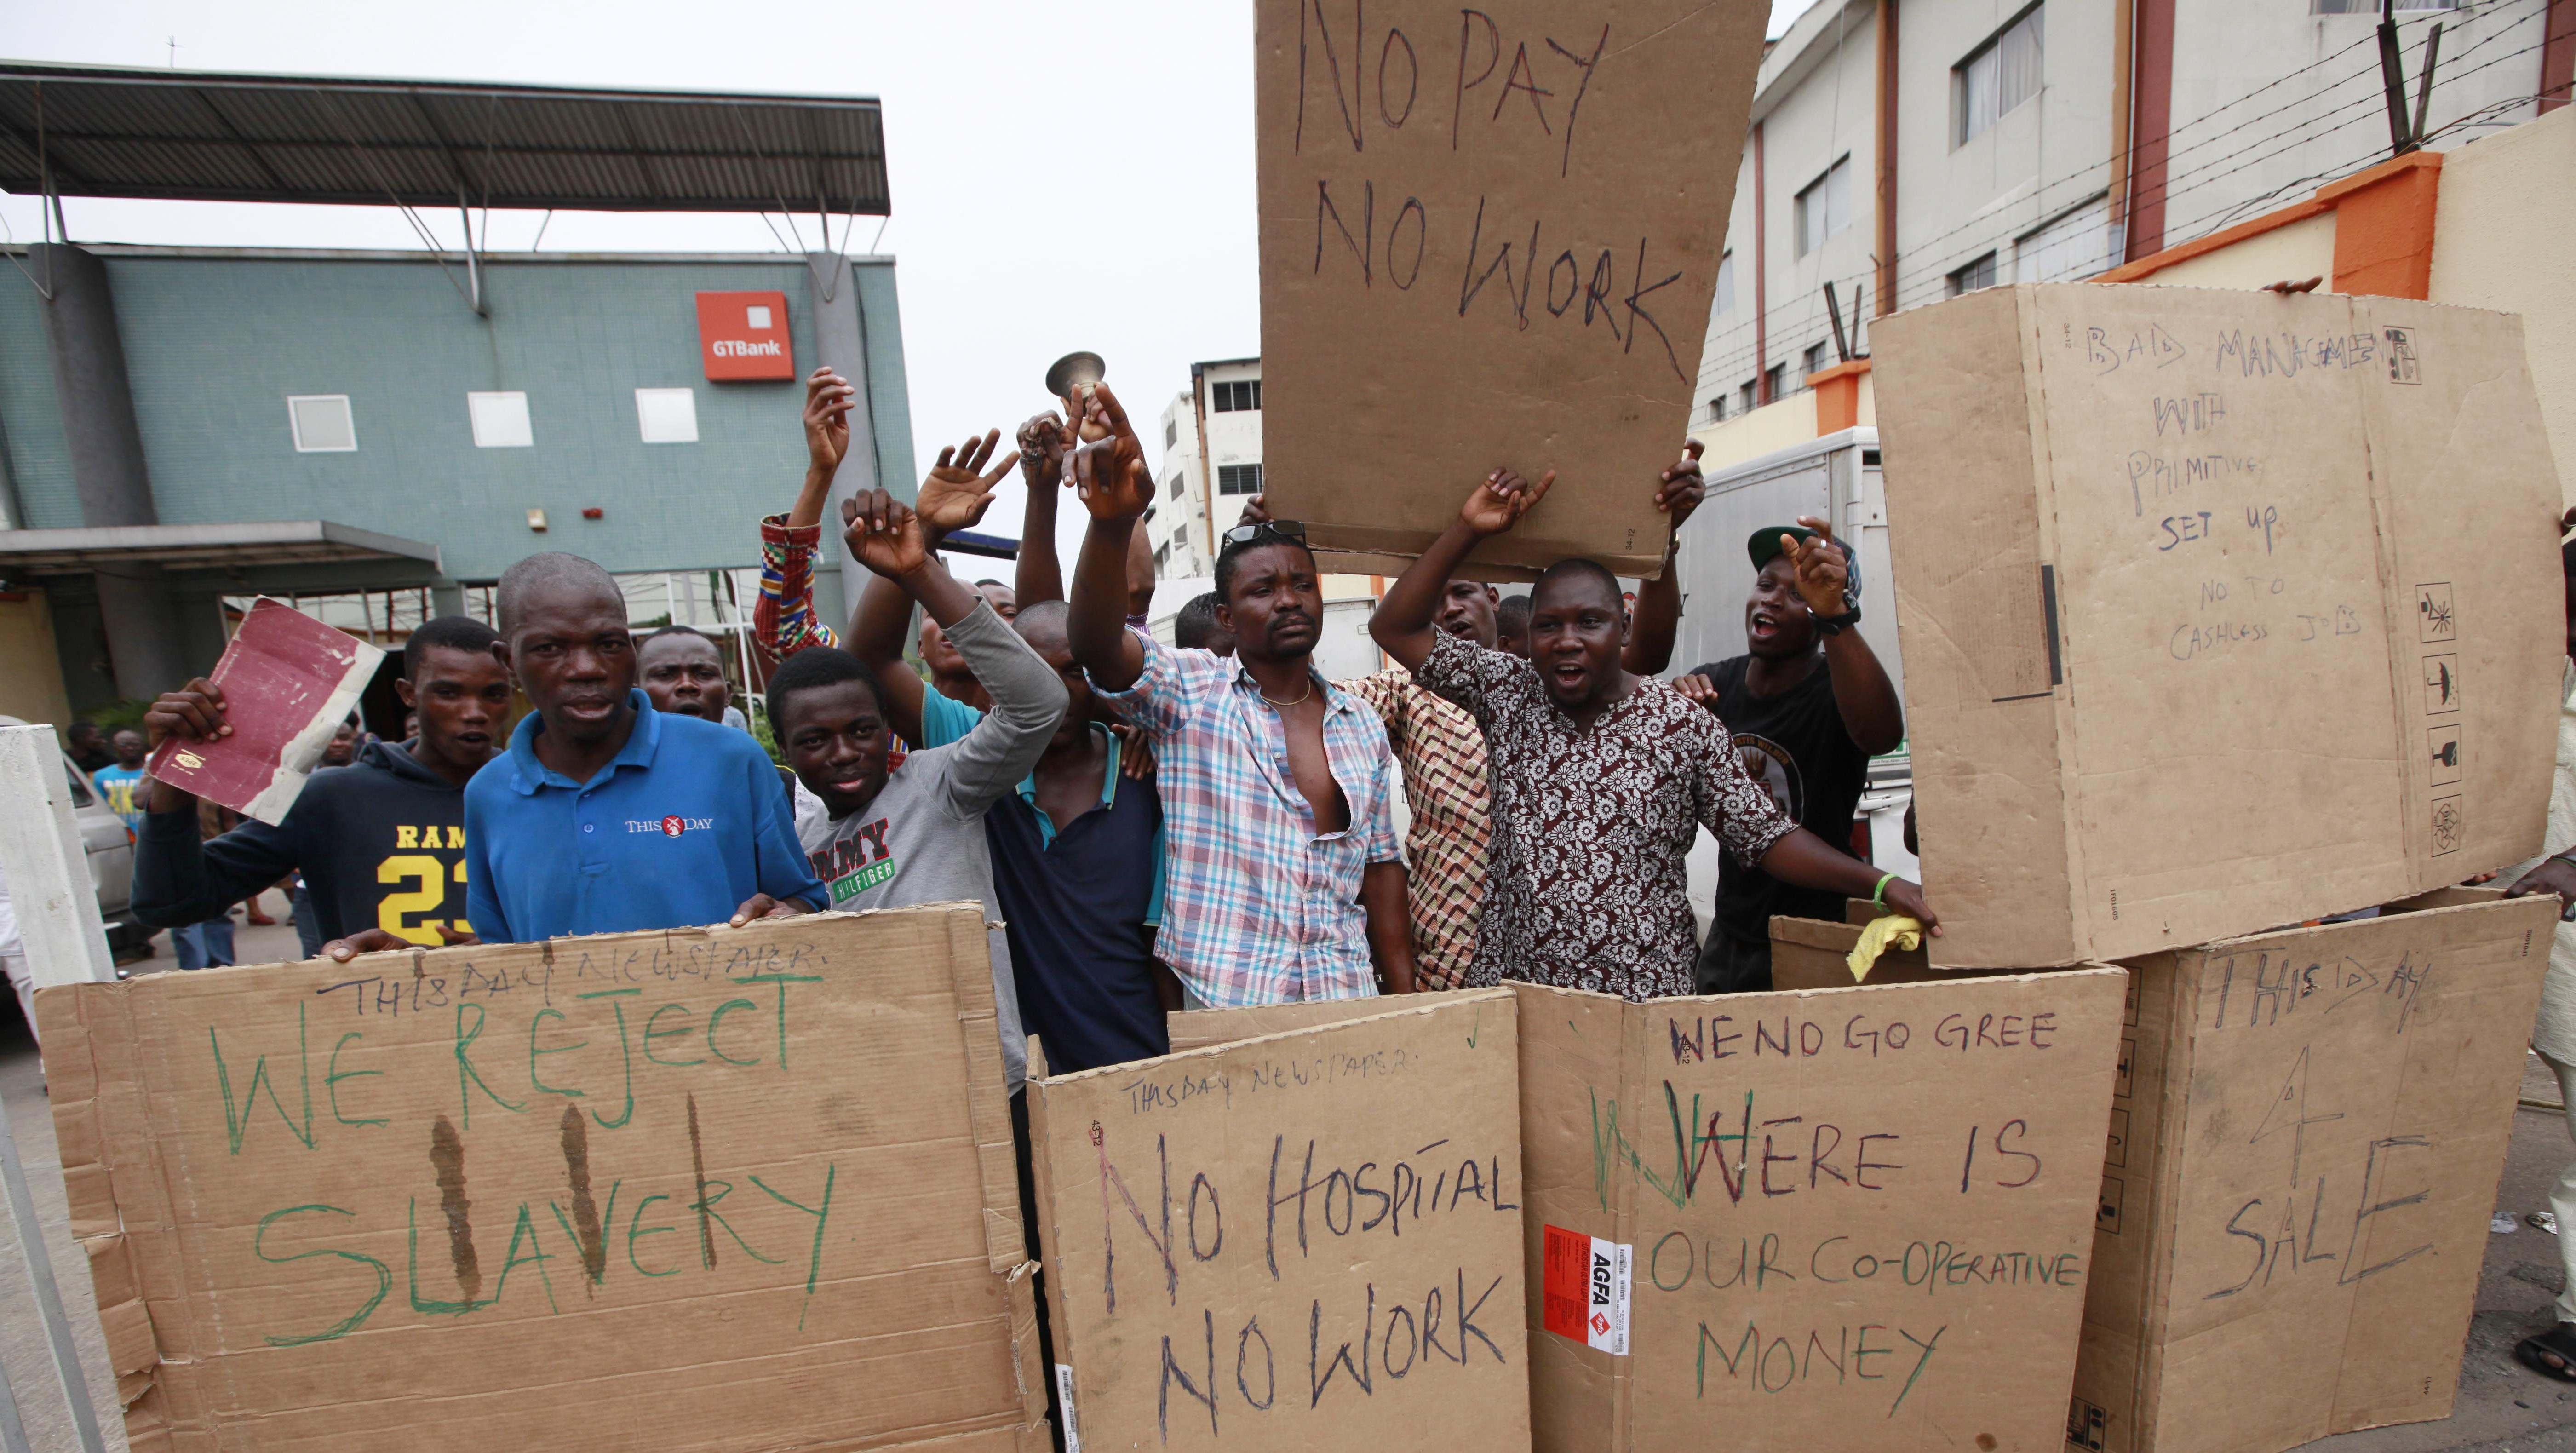 Workers of This Day newspaper protest and barricade the front office due to non payment of salaries, in Lagos, Nigeria, Friday, May 10, 2013. Known more for bringing in celebrities and smiling in photographs next to former Western leaders, a flamboyant Nigerian newspaper publisher now faces a challenge from his most vocal critics _ his own employees. Workers have barricaded the front of This Day newspapers in Lagos, hoping to force publisher Nduka Obaigbena into paying them as much as four months' worth of back salaries due to them. Back pay disputes often hit industries in Nigeria, a country where steady paying jobs remain few, but this crisis has hit a man politically connected to the nation's ruling elite, the second such major business figure to be stung in recent months.(AP Photos/Sunday Alamba)